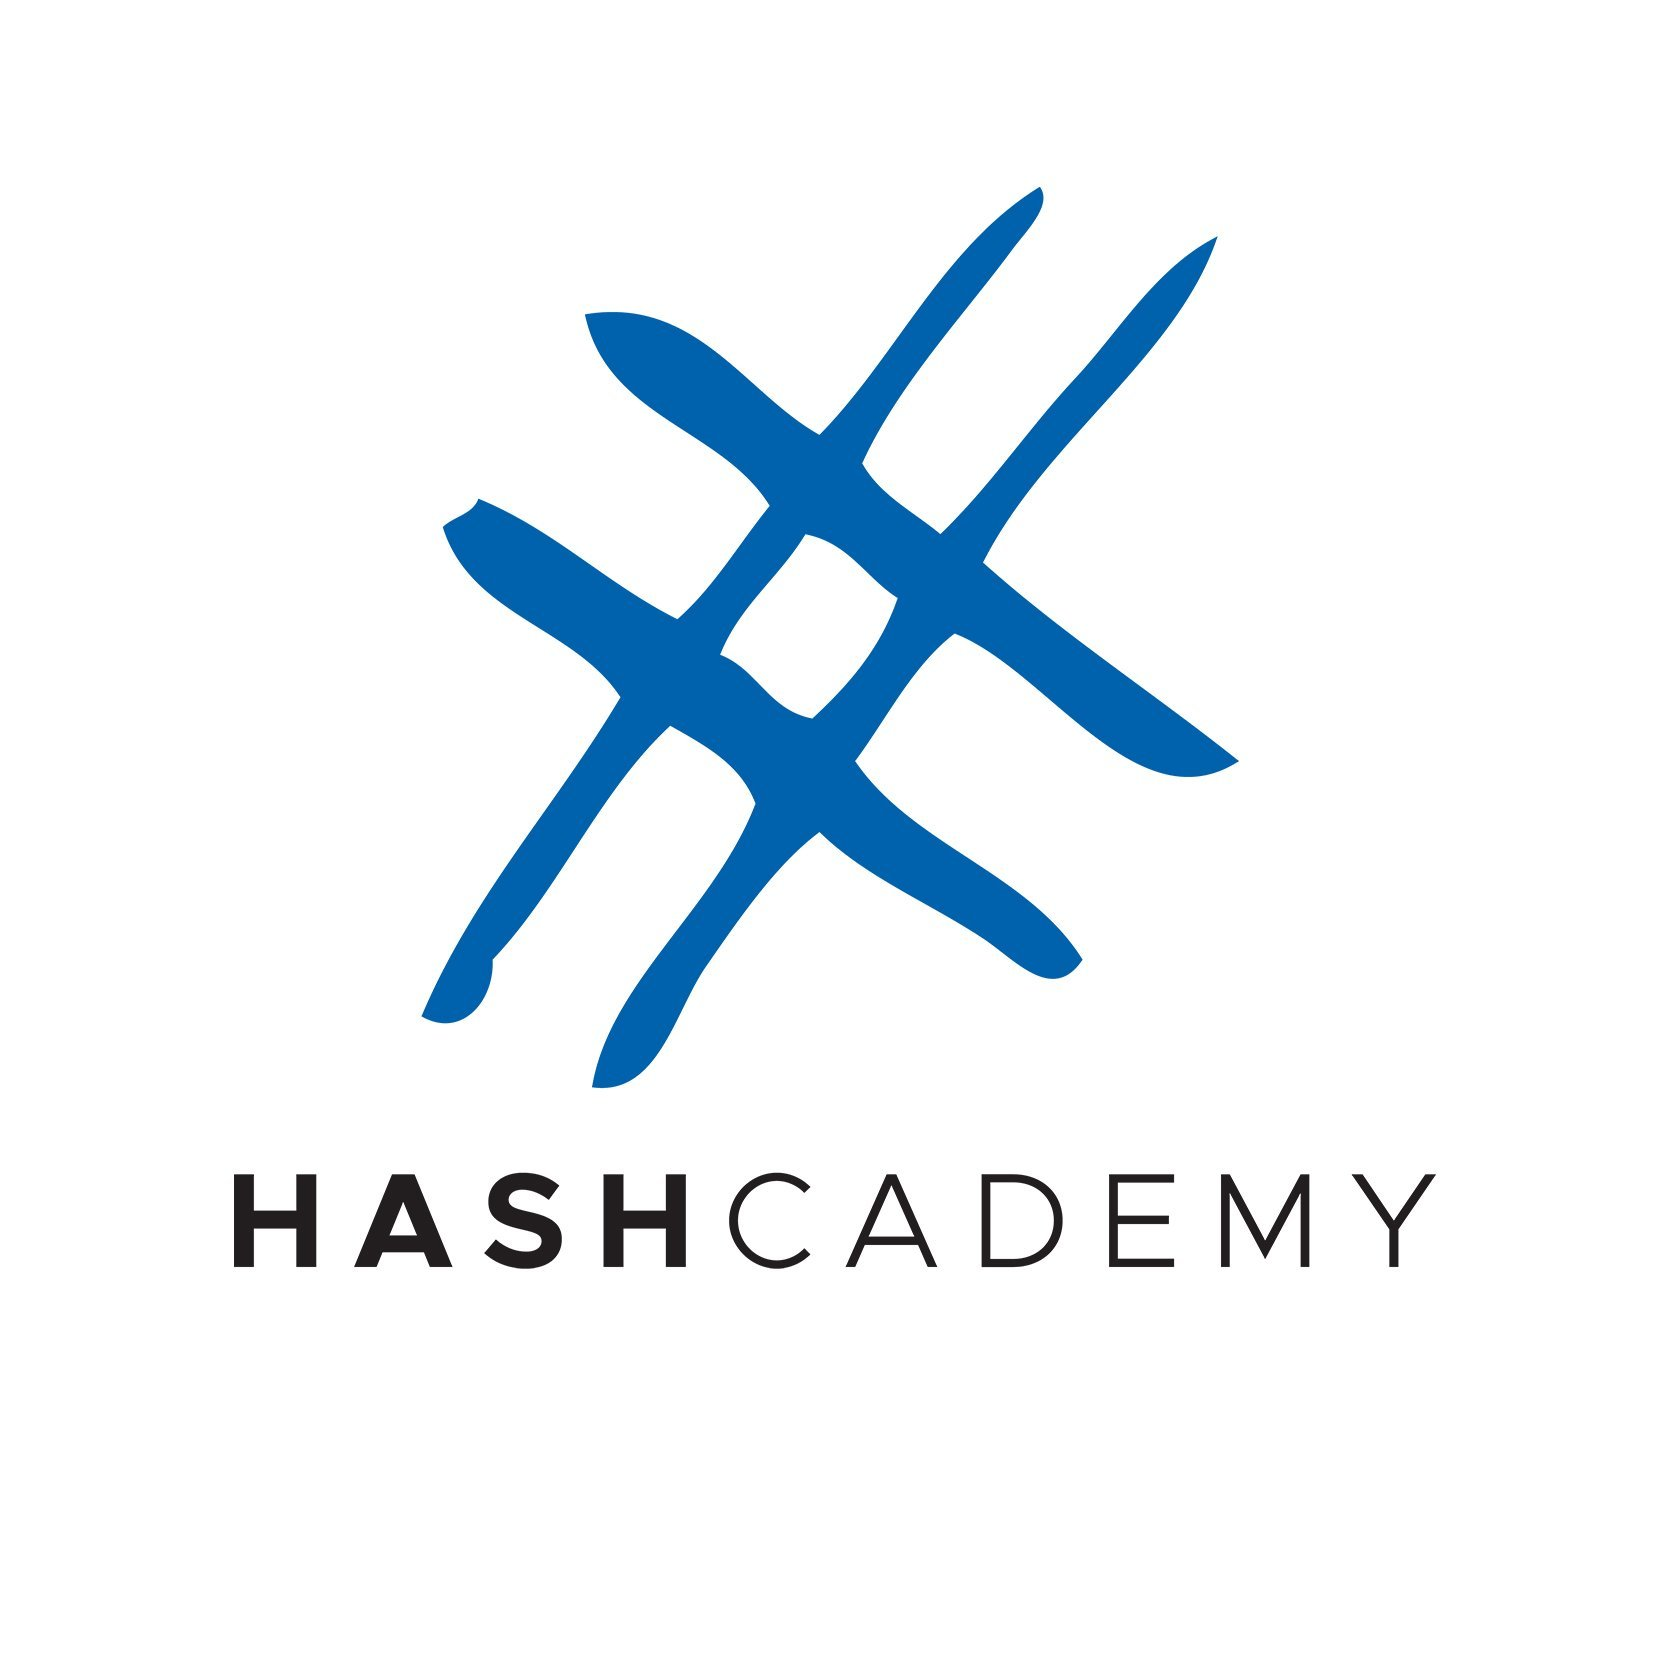 Hashreader Limited